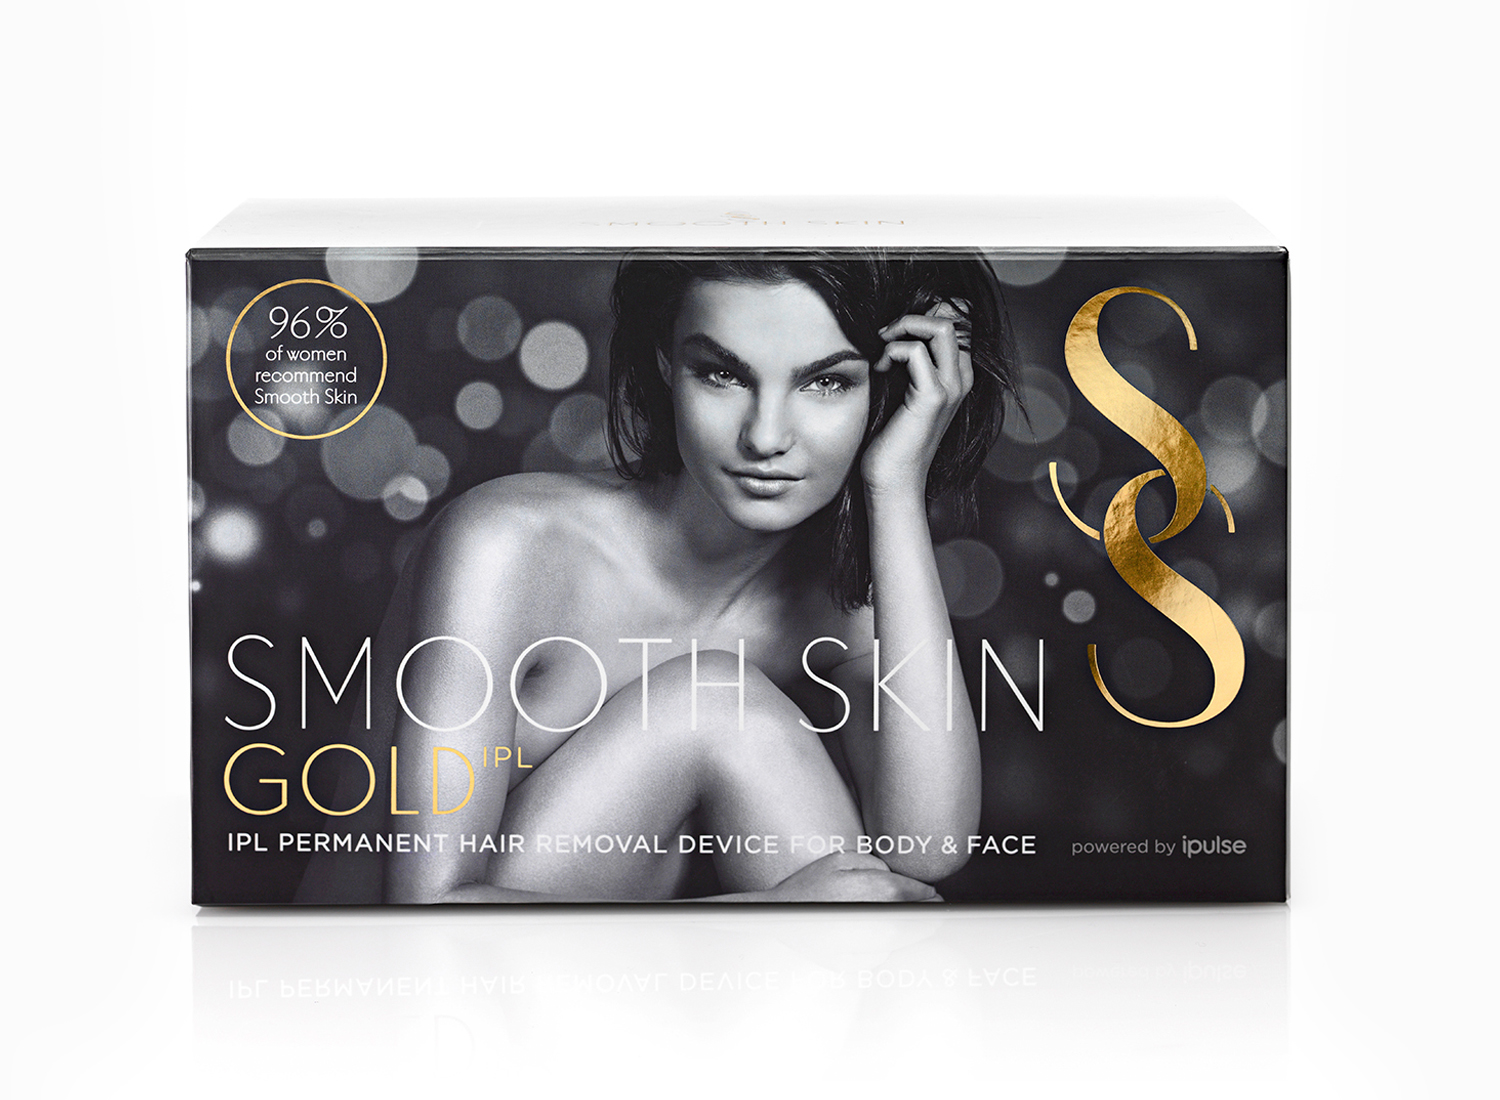 smoothskinpackaging_HP1500x1100px.jpg